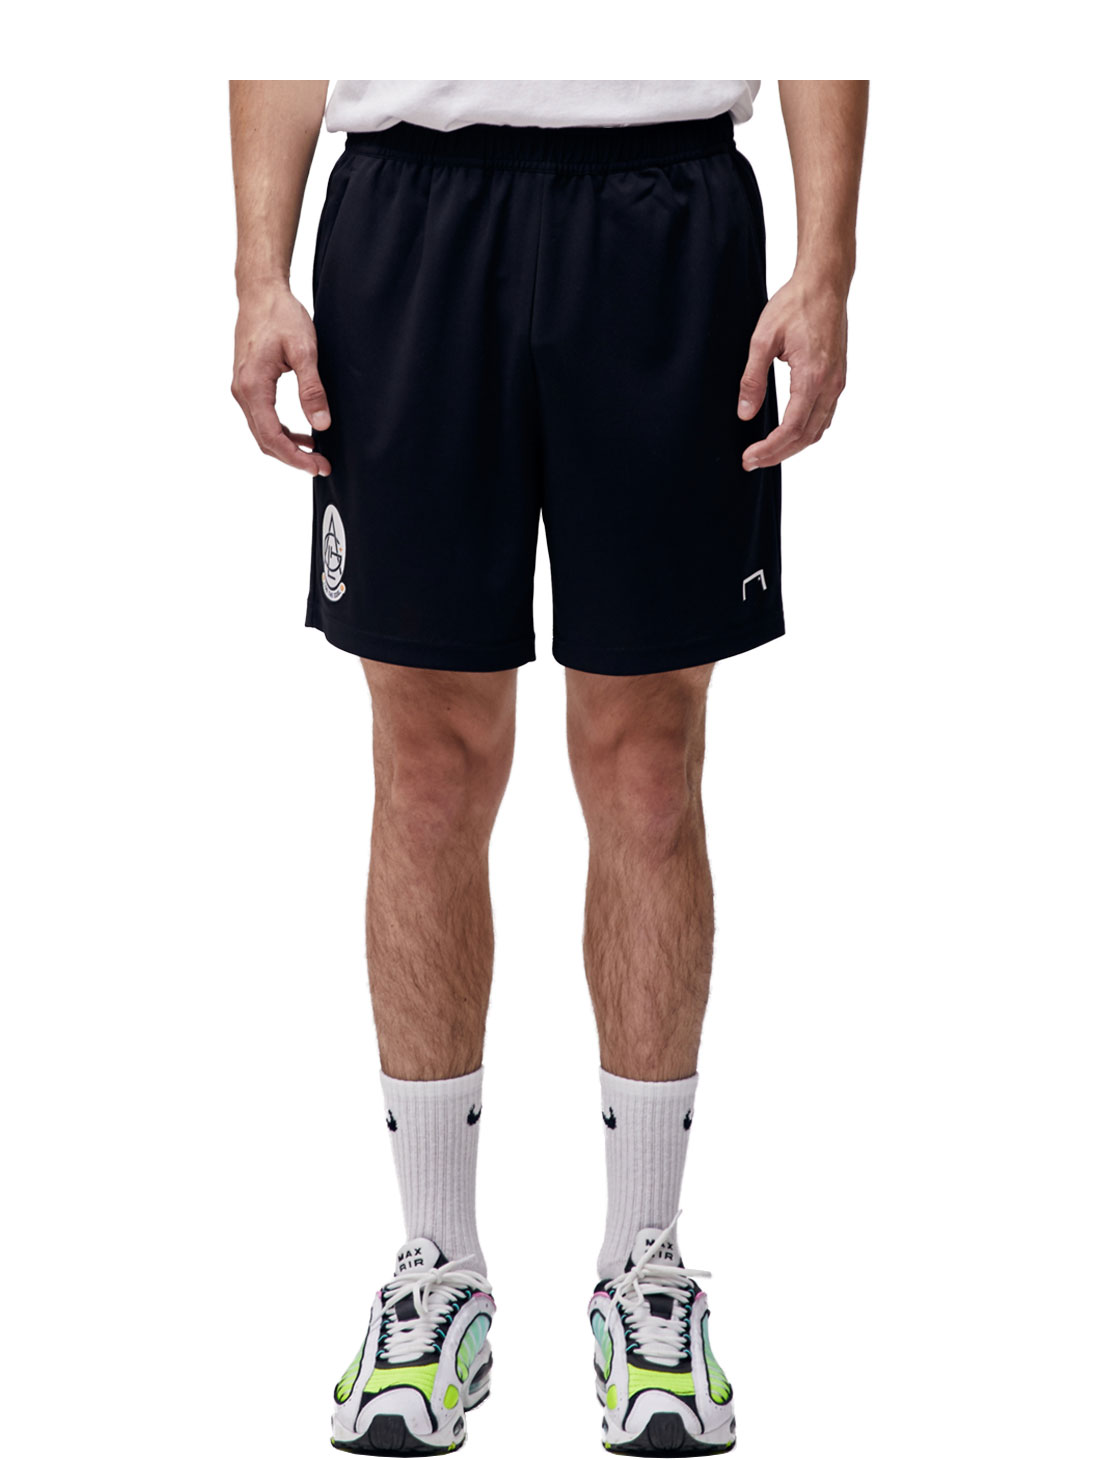 GOALSTUDIO PLAYER EMBLEM SHORTS - BLACK